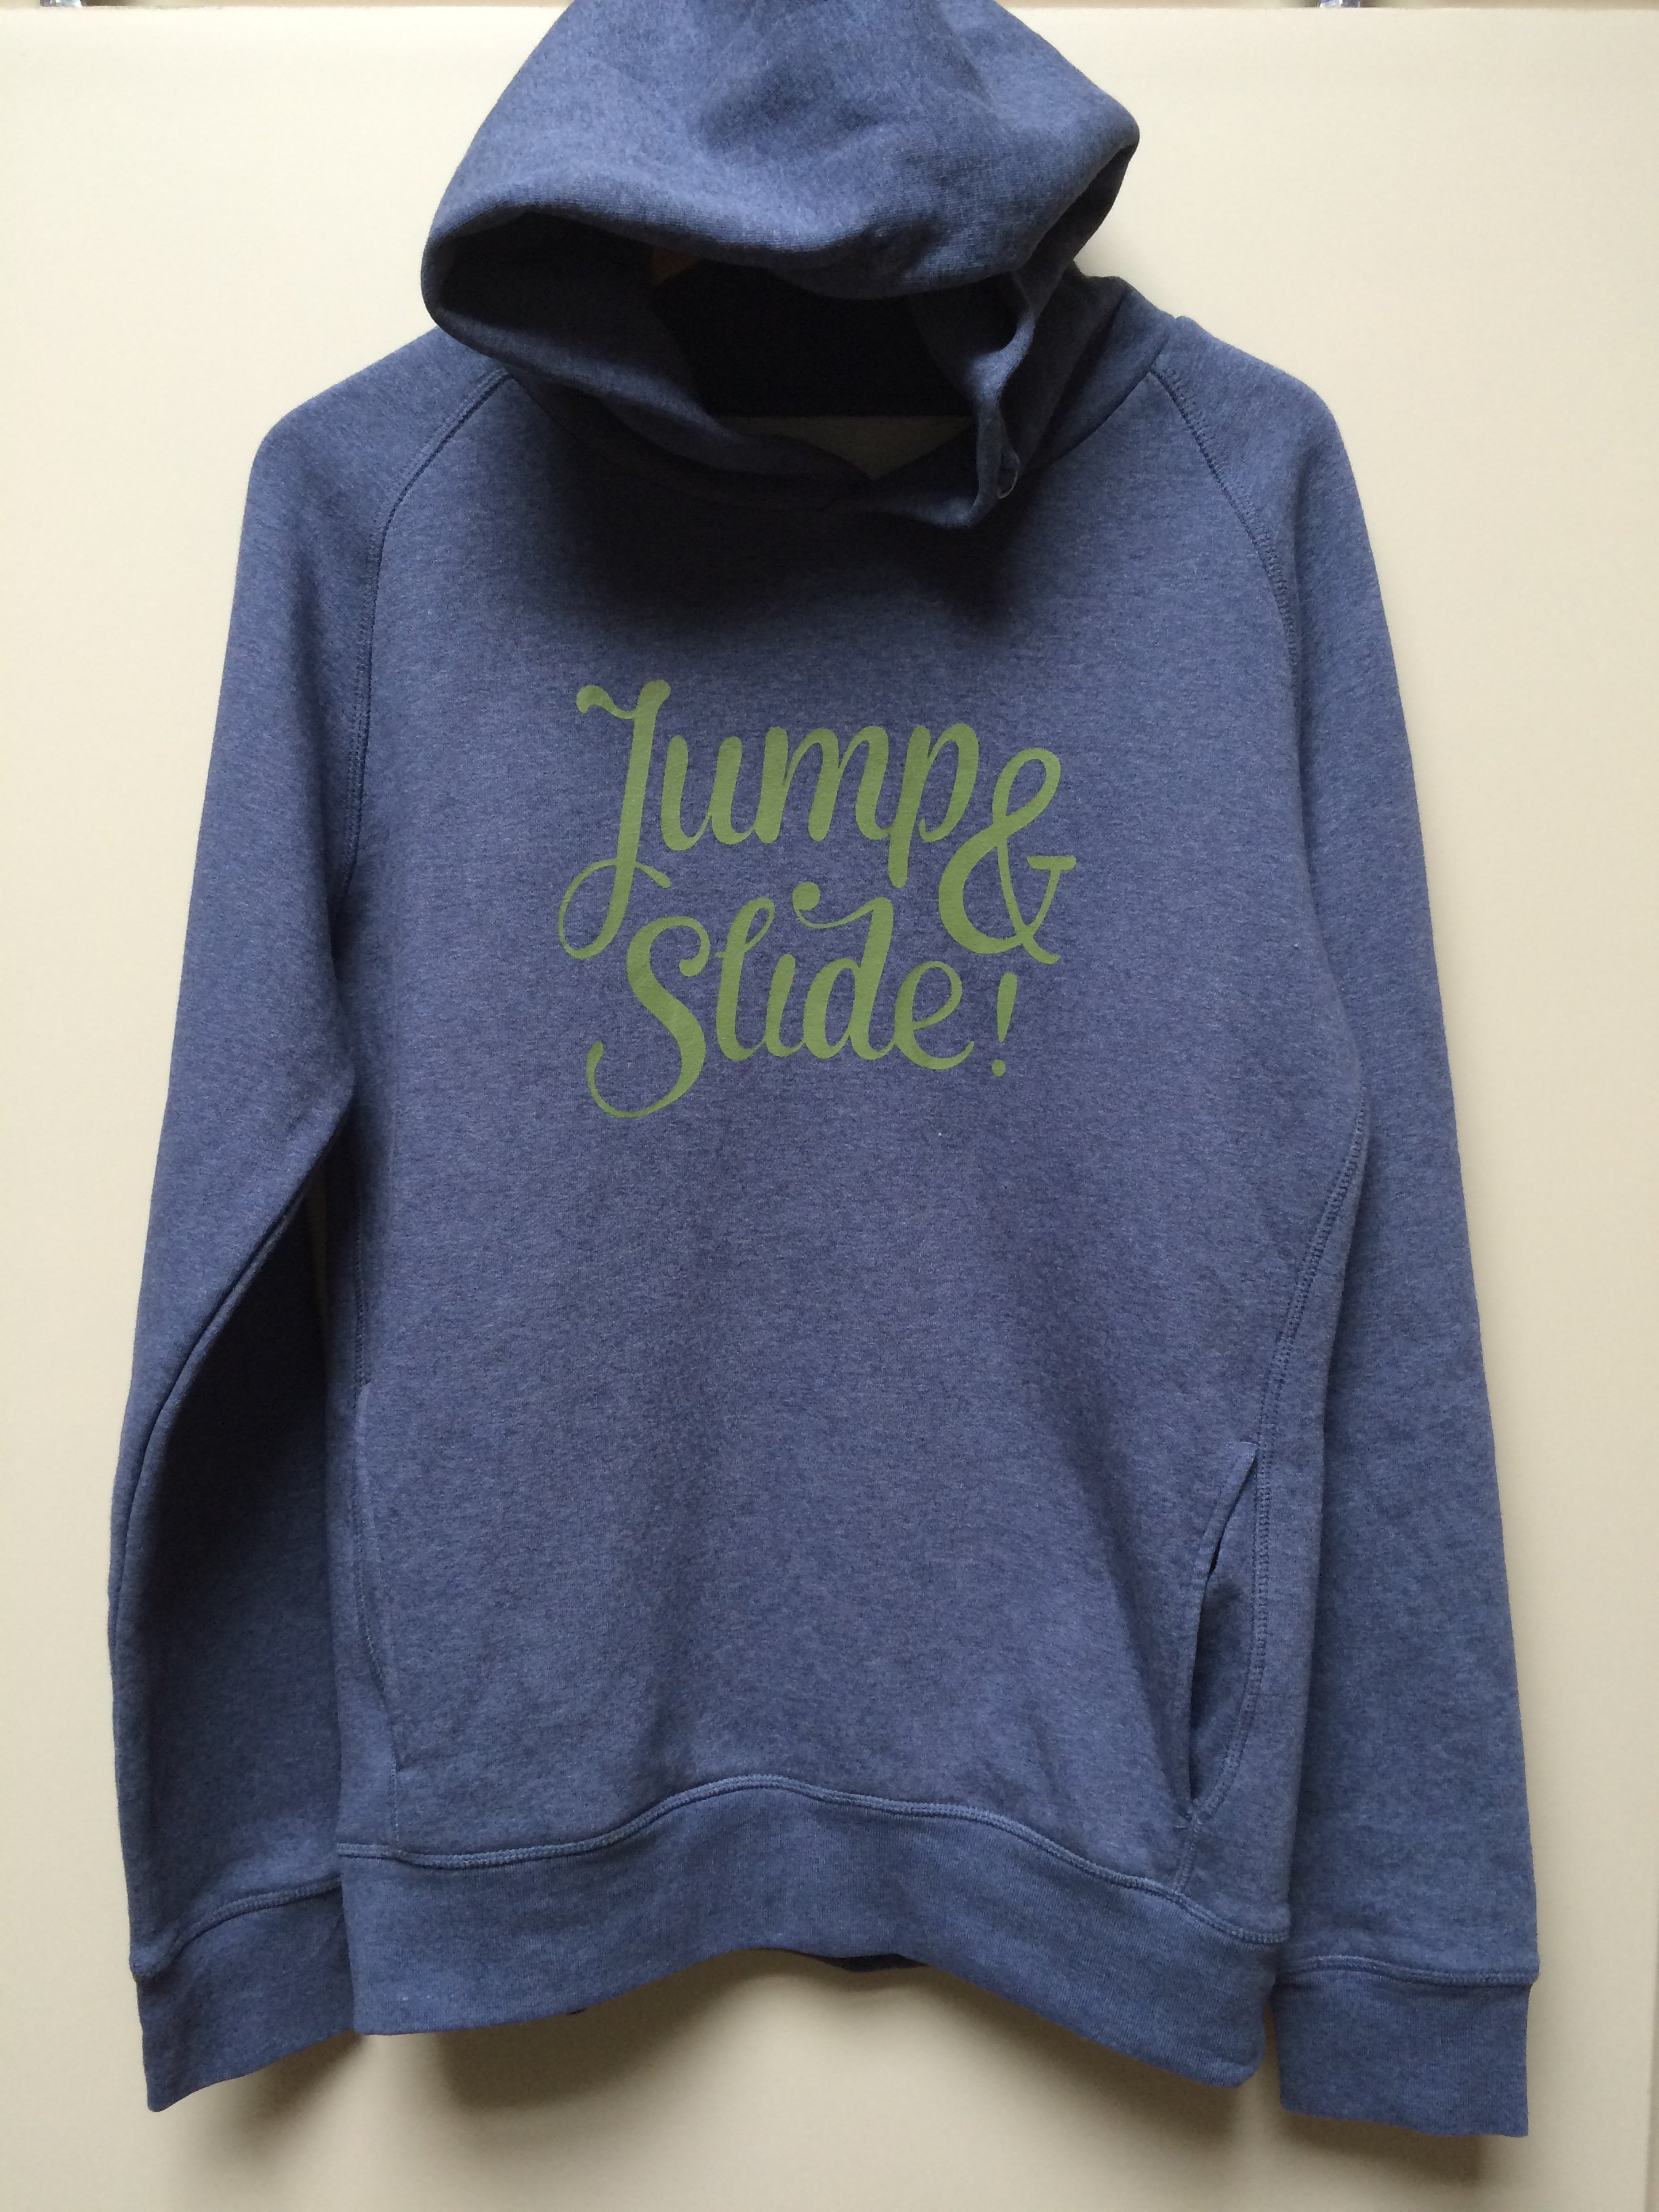 Unisex HOODY, Jump & Slide! from RITTRSHAUS